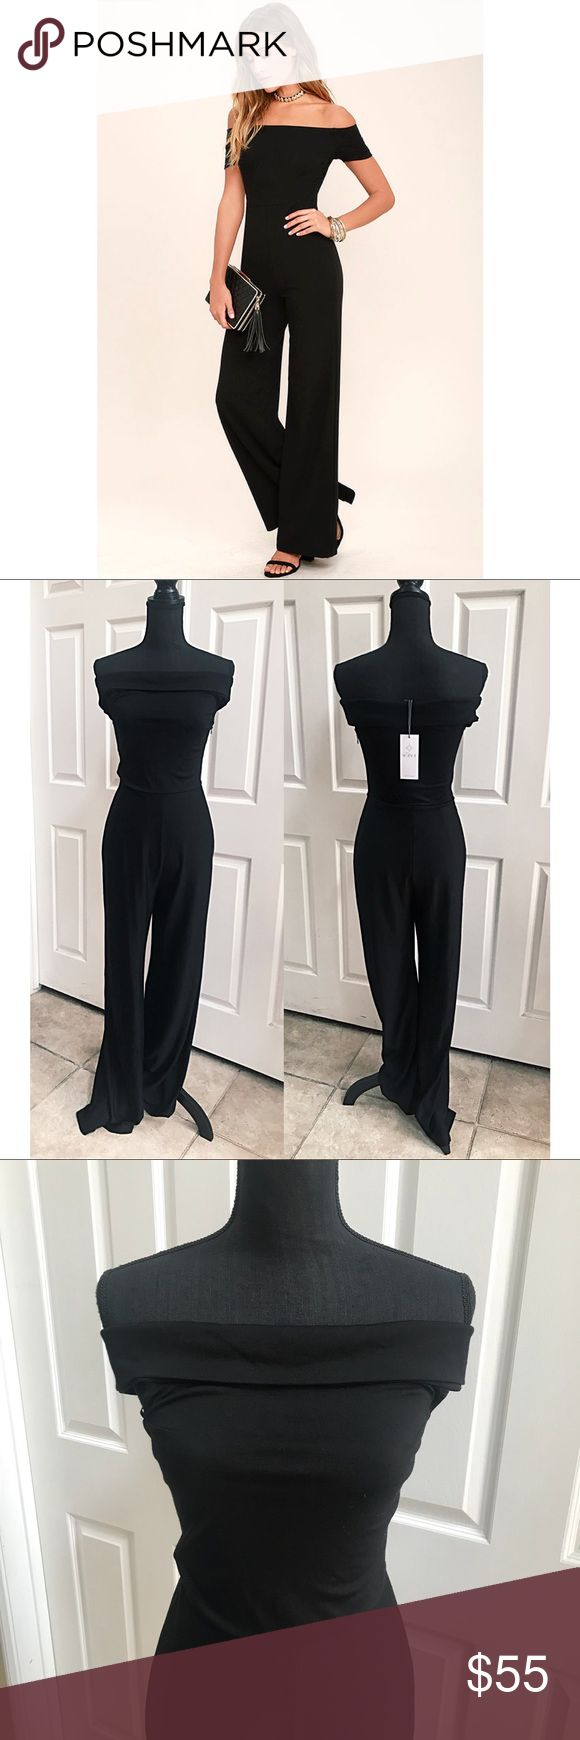 NWT WAYF Black One piece jumpsuit off shoulder Gorgeous solid black color one piece jumpsuit by WAYF  NOTE** First photo with model is a similar style, not the WAYF Brand- included to visualize similar fit. The Jumpsuit for sale is photographed in all other photos on mannequin.   Size small Stretchy  Off the shoulder  Wide leg pants Flare  New with tags Wayf Pants Jumpsuits & Rompers